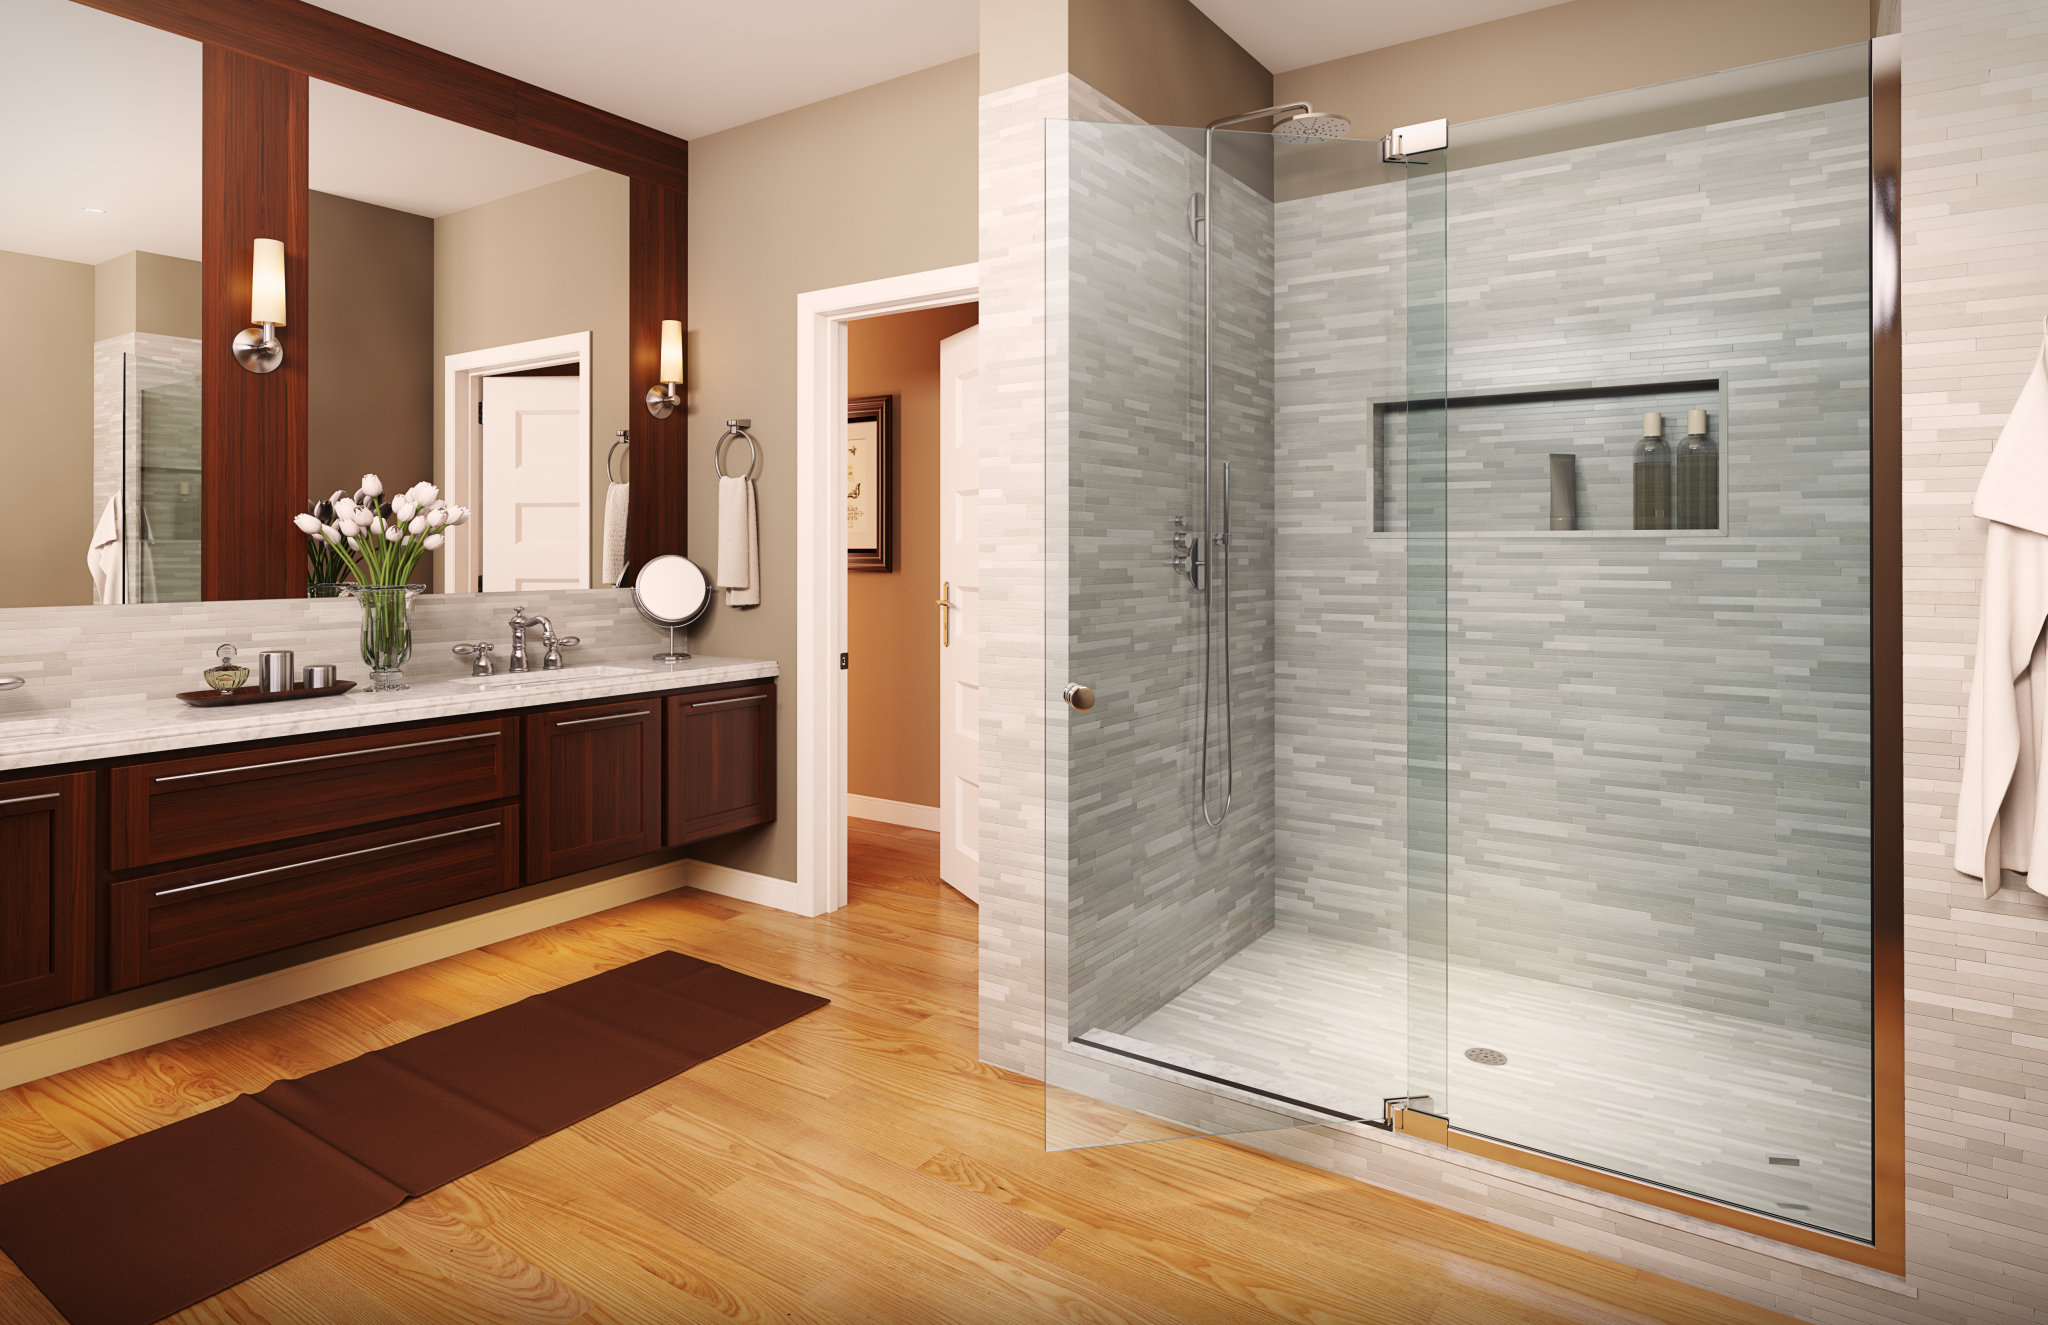 Bathroom trends a concord carpenter for Bathroom remodel trends